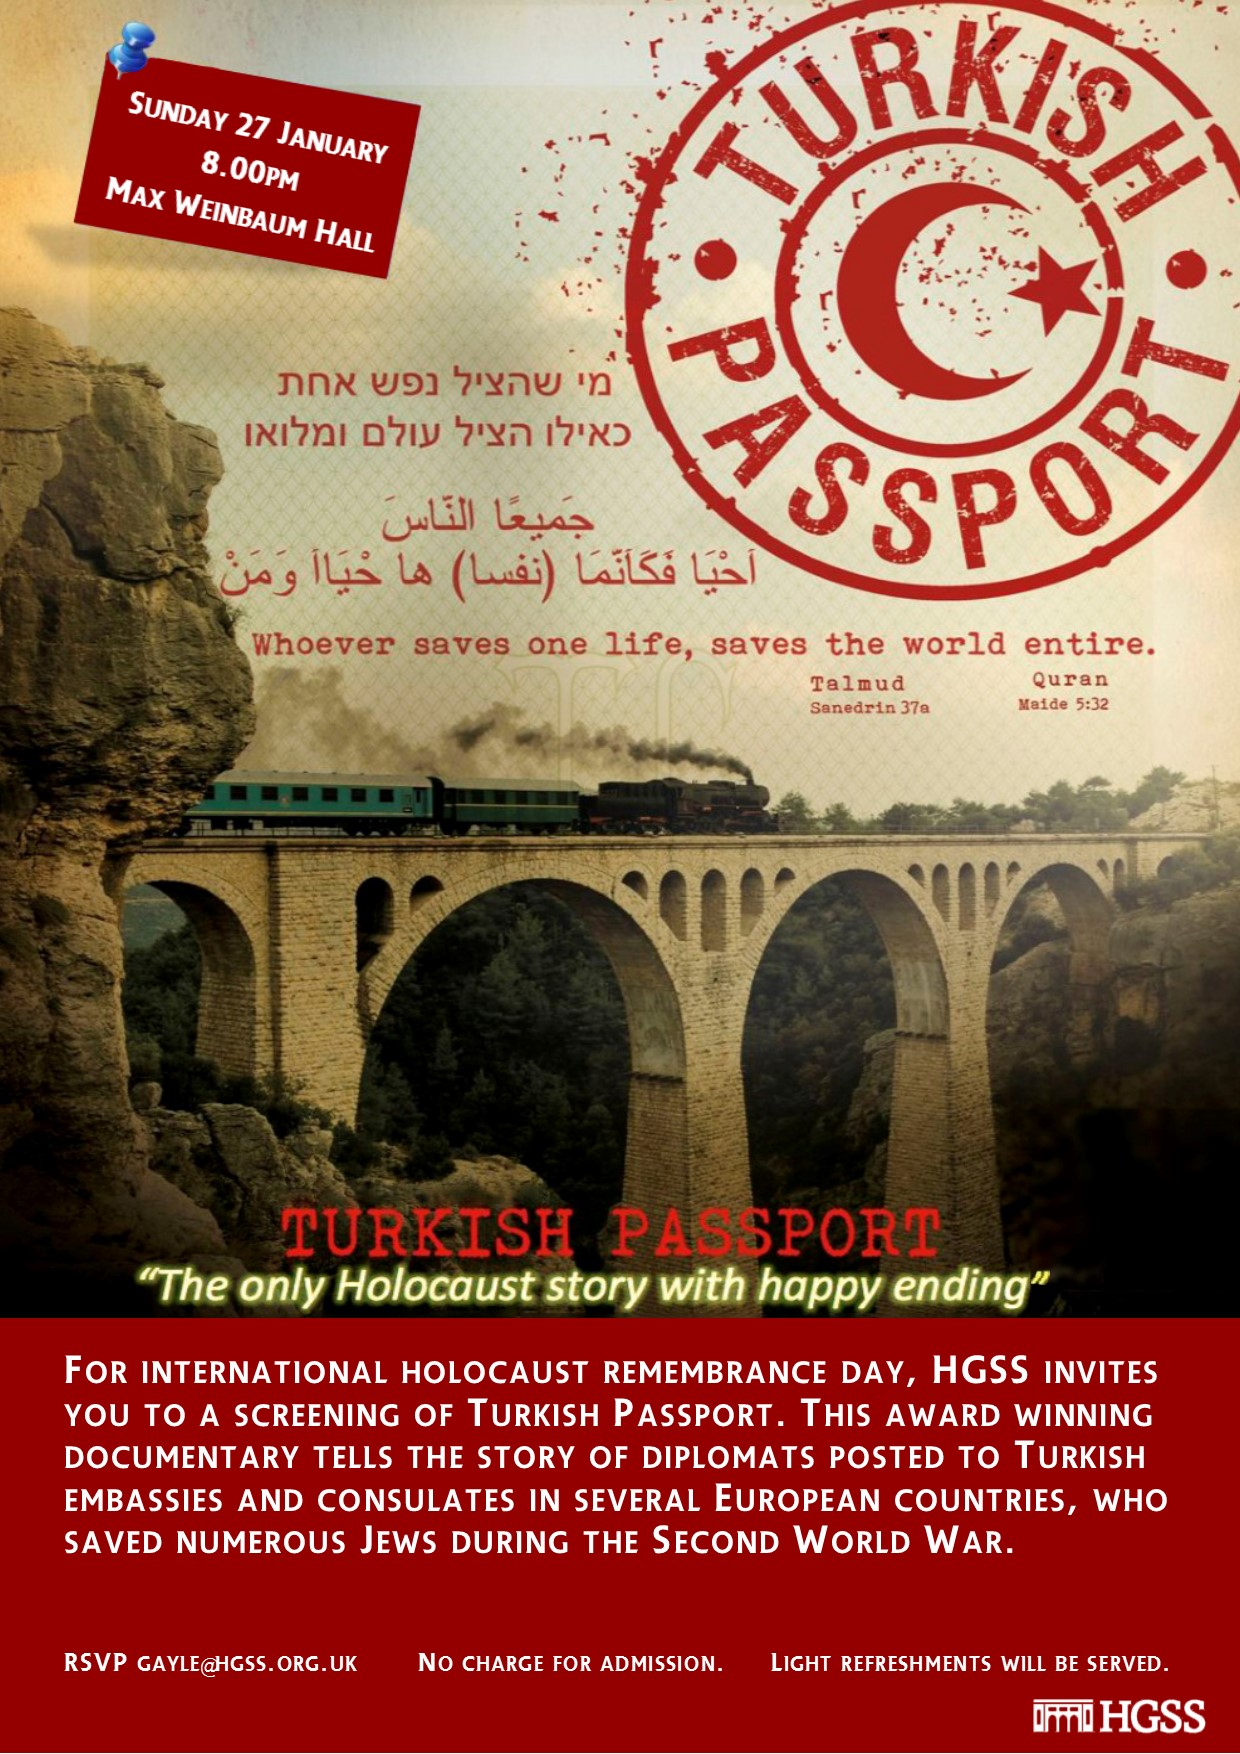 Turkish Passport @ HGSS